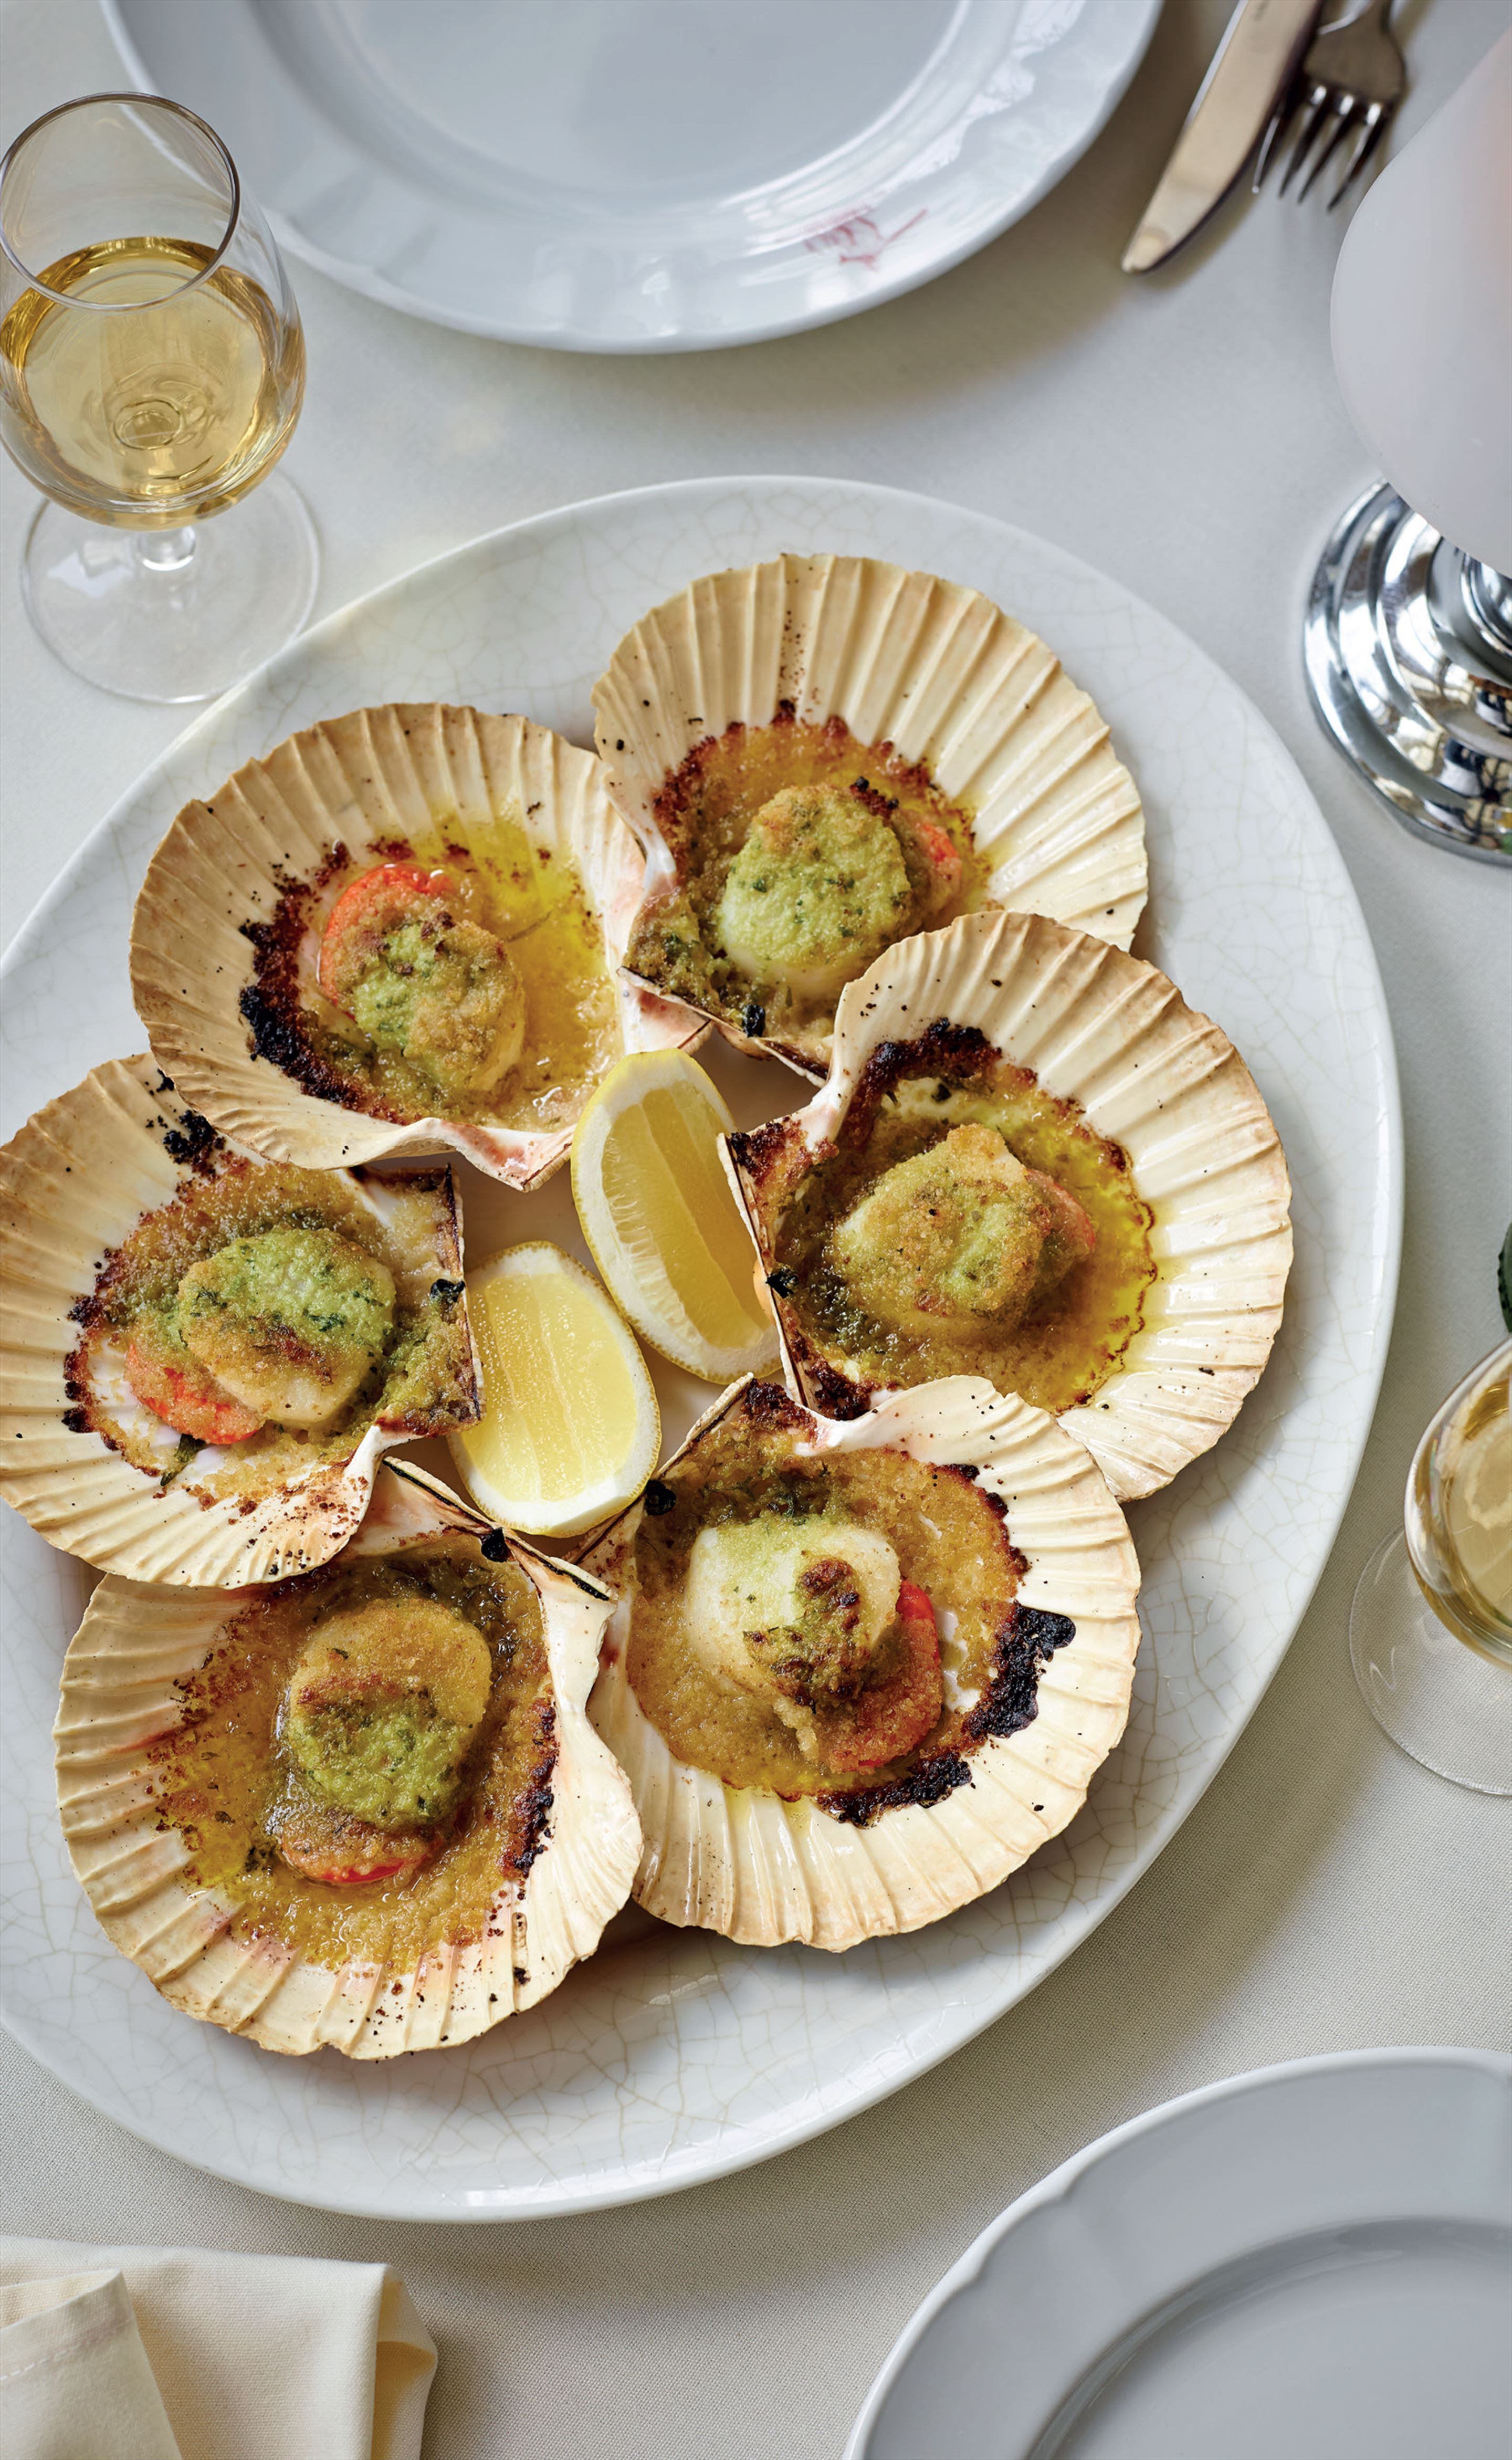 Scallops with white port and garlic